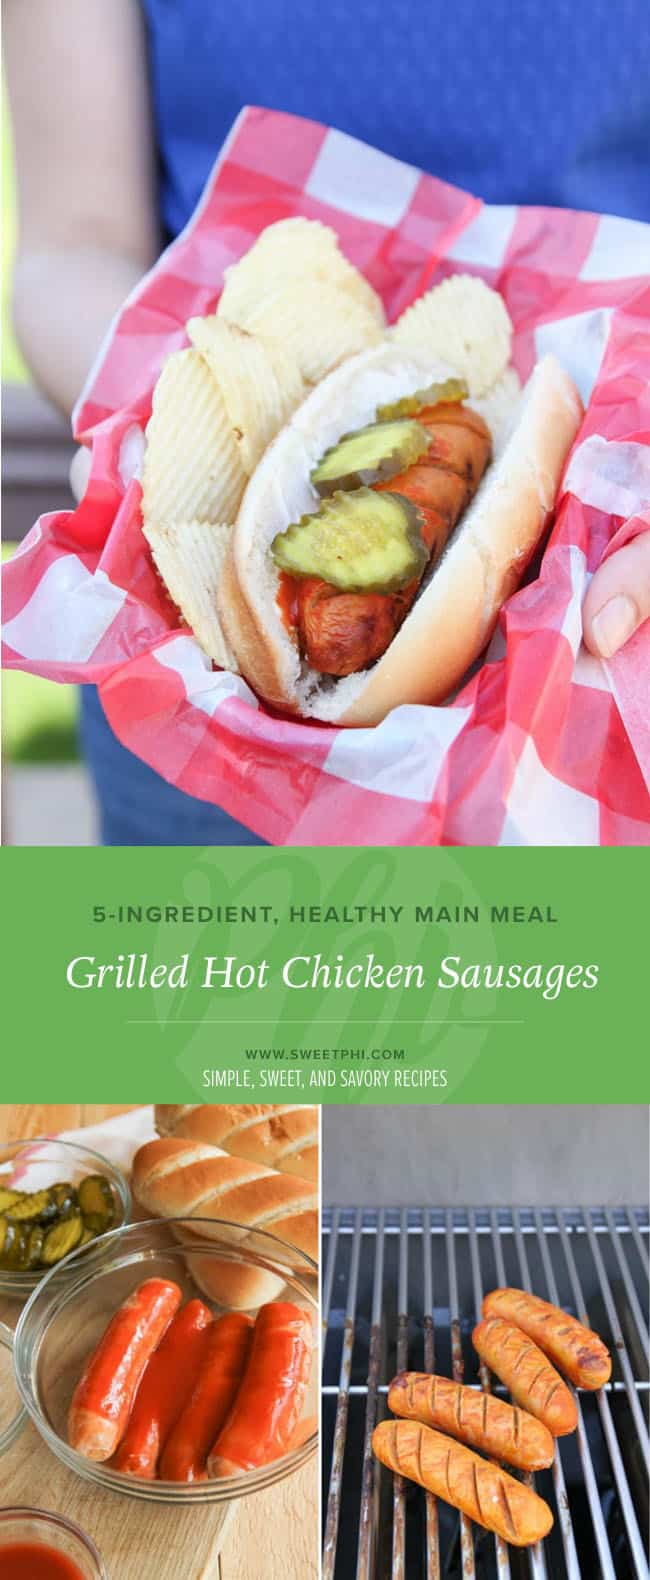 The most amazing grilled hot chicken sausages